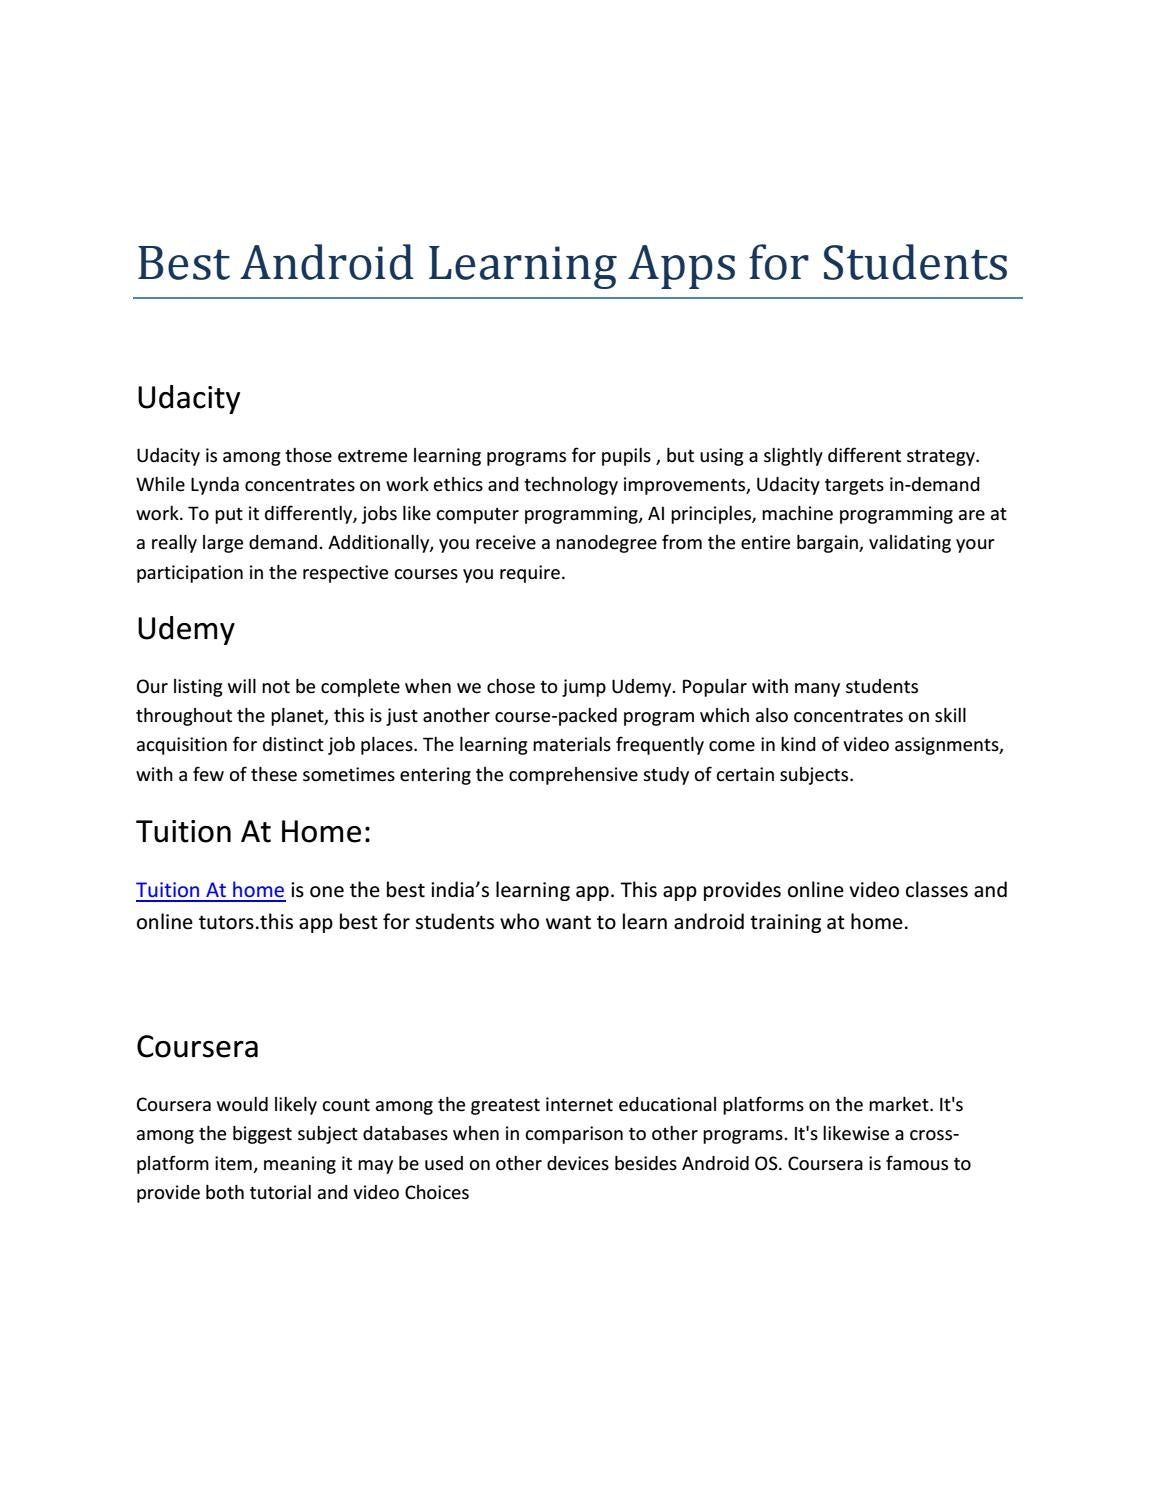 Best Andriod Learning Apps For Students by surattraining - issuu